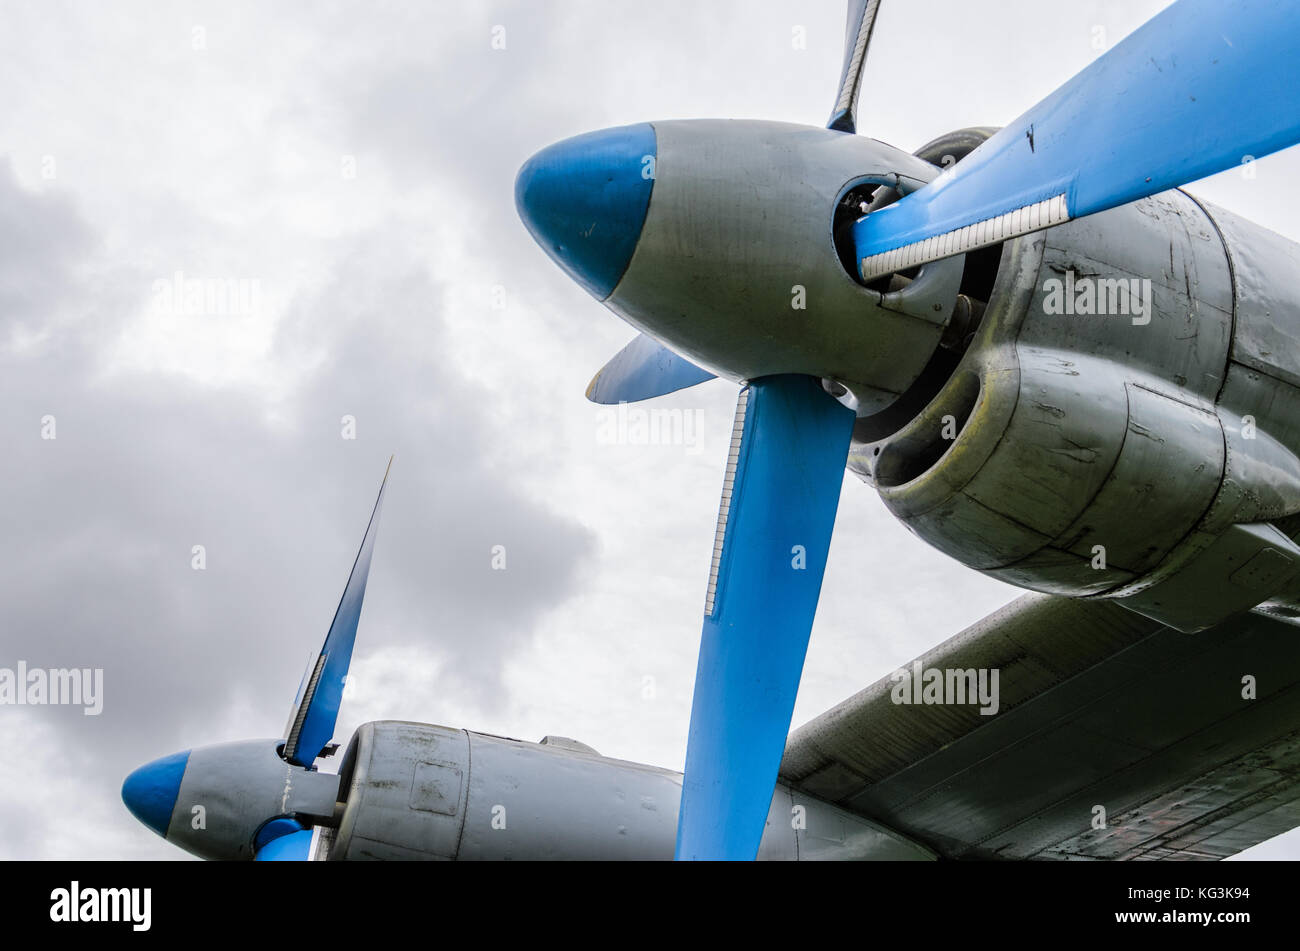 Close up of airplane turboprop engine with propeller, parts